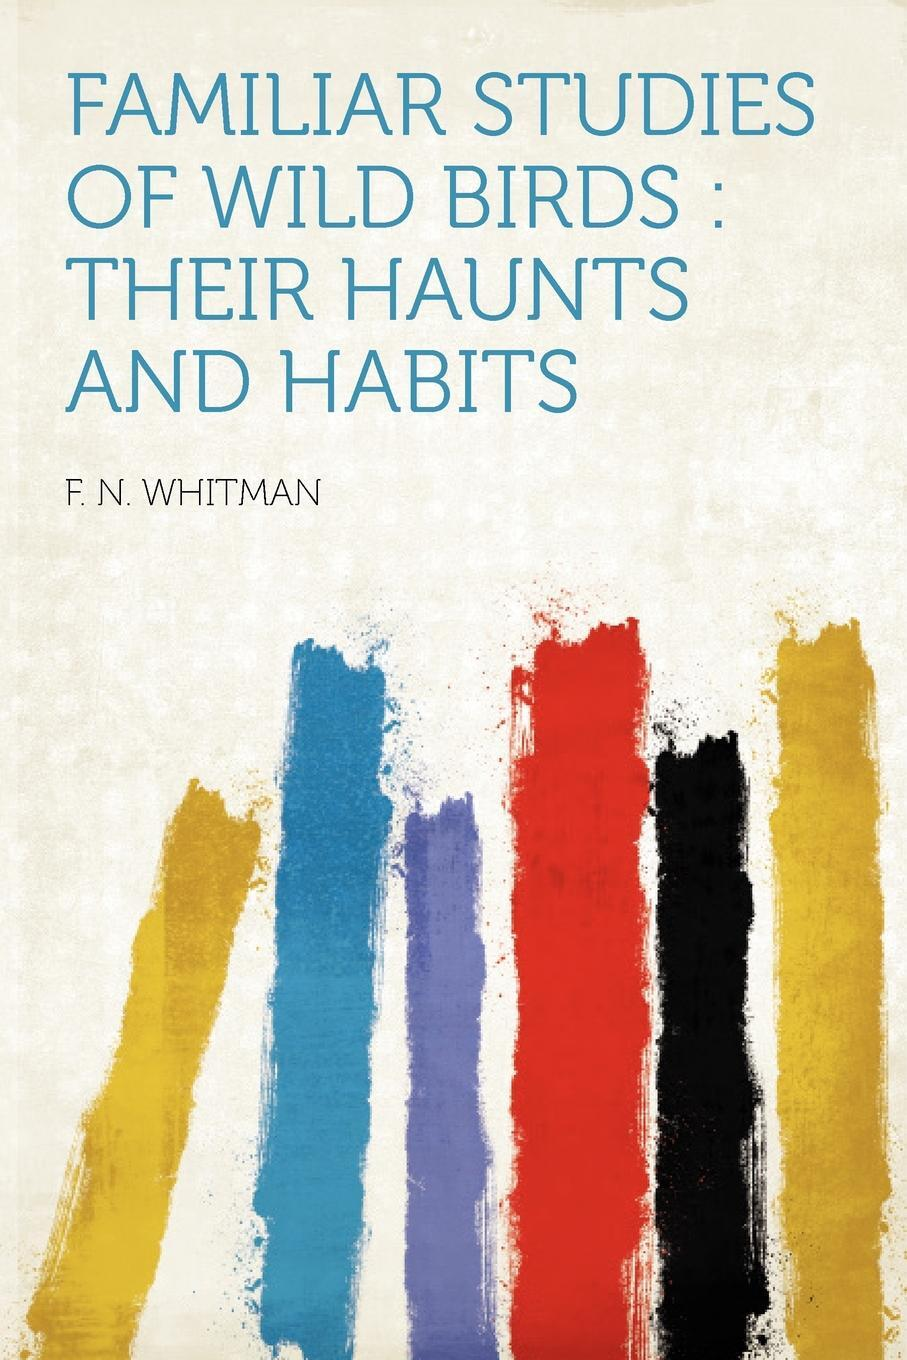 Familiar Studies of Wild Birds. Their Haunts and Habits. F. N. Whitman